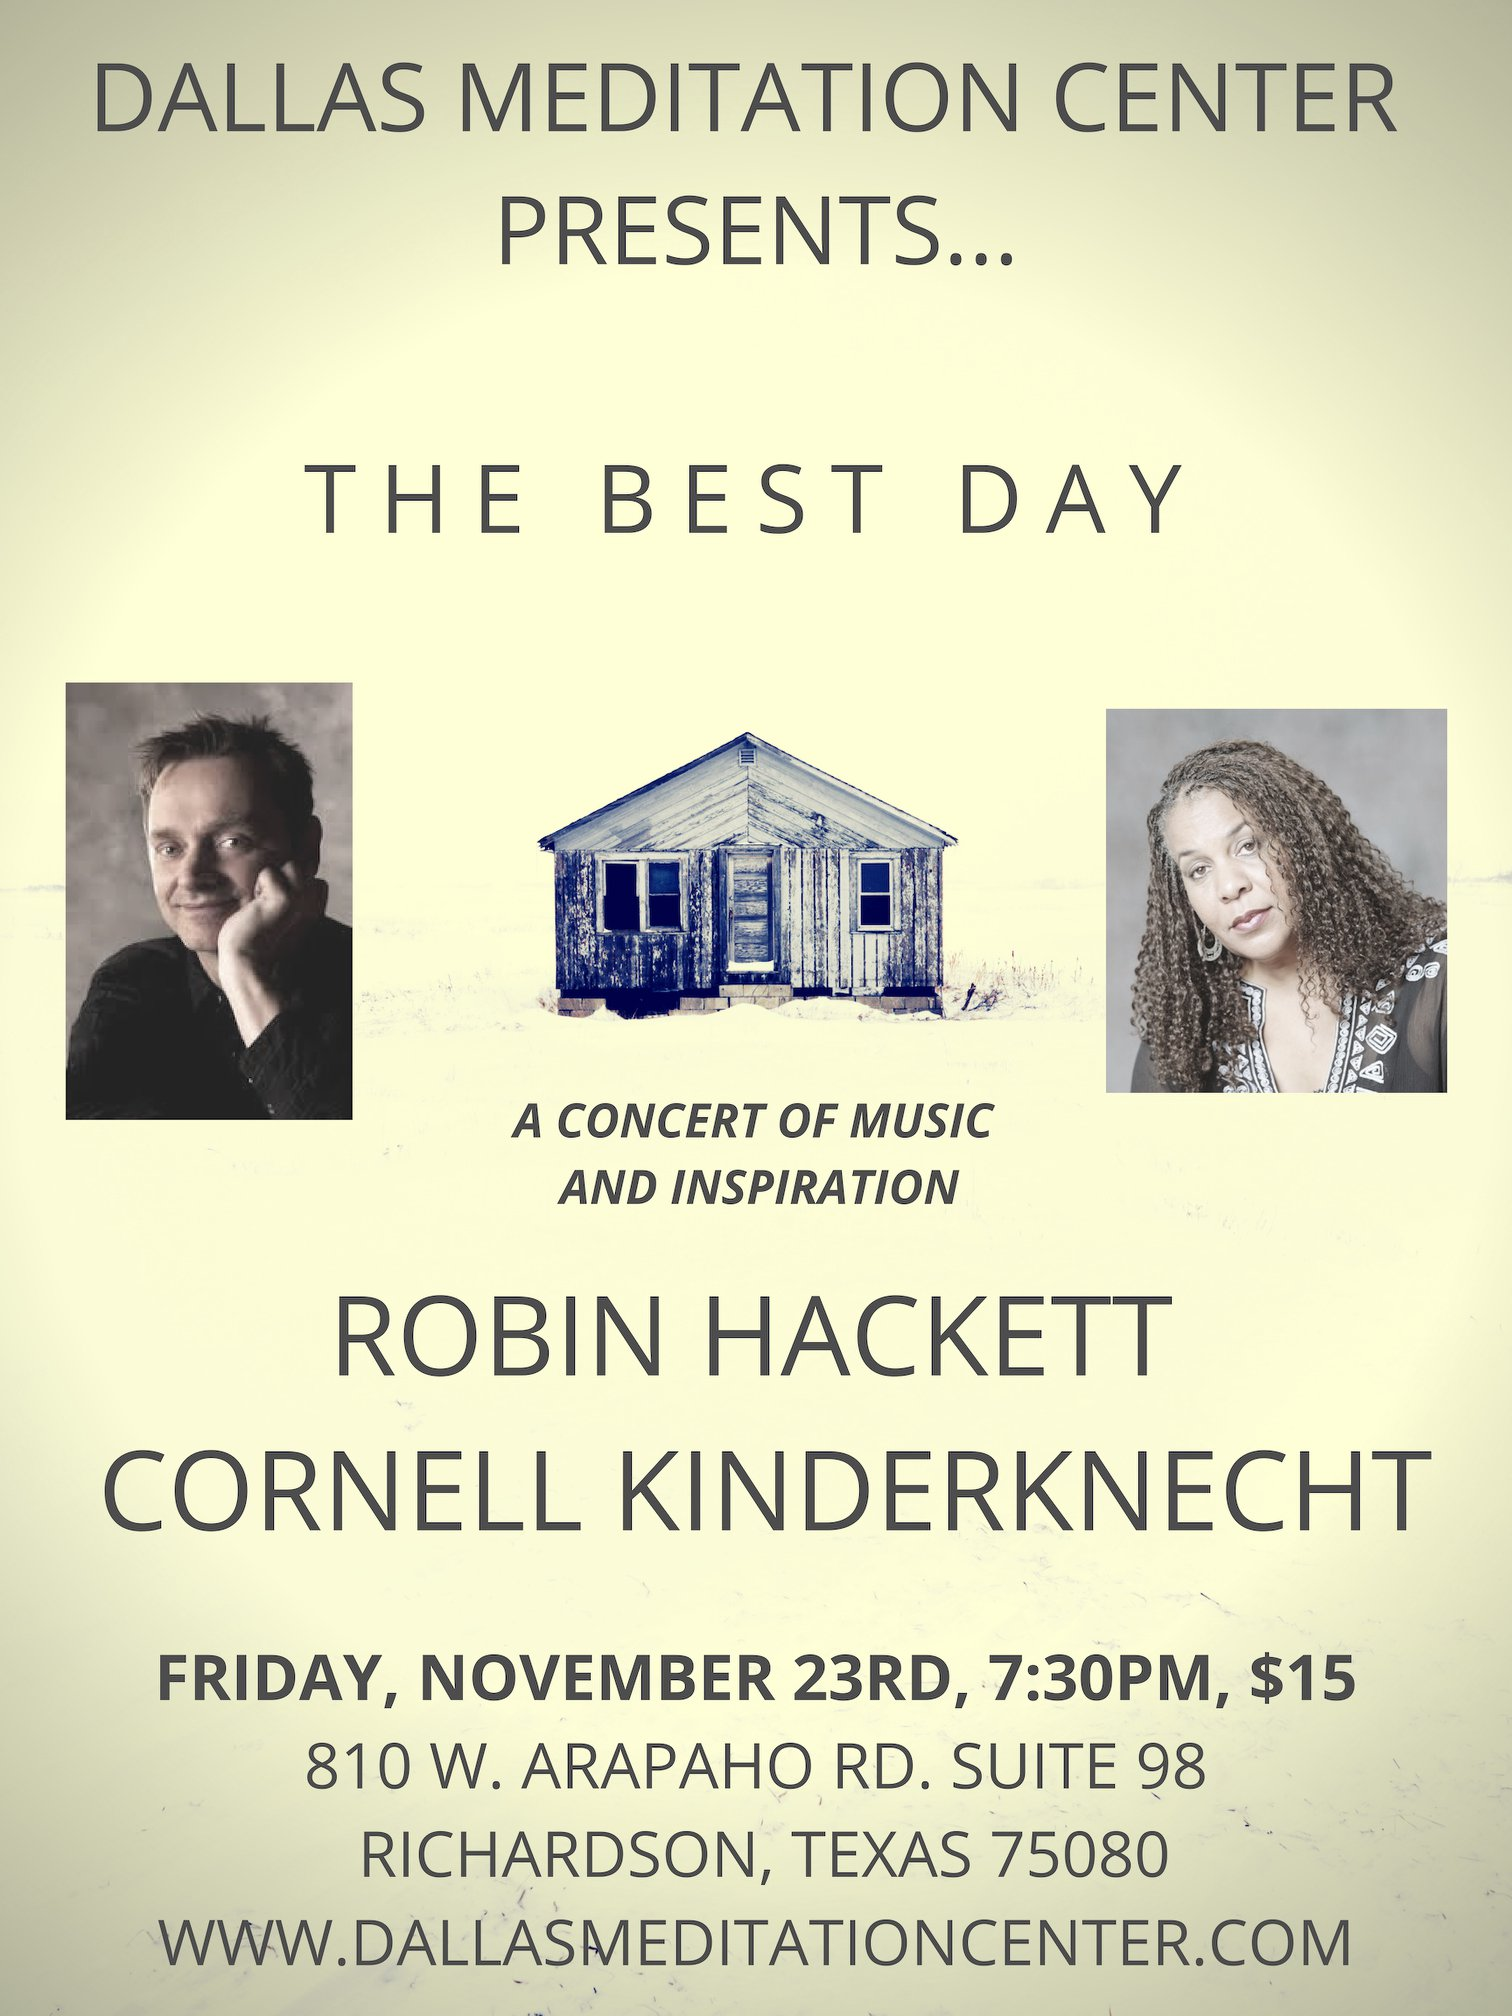 Evening Concert with Julie Bonk and Cornell Kinderknecht - January 12, 2019 - Richardson/Dallas, Texas